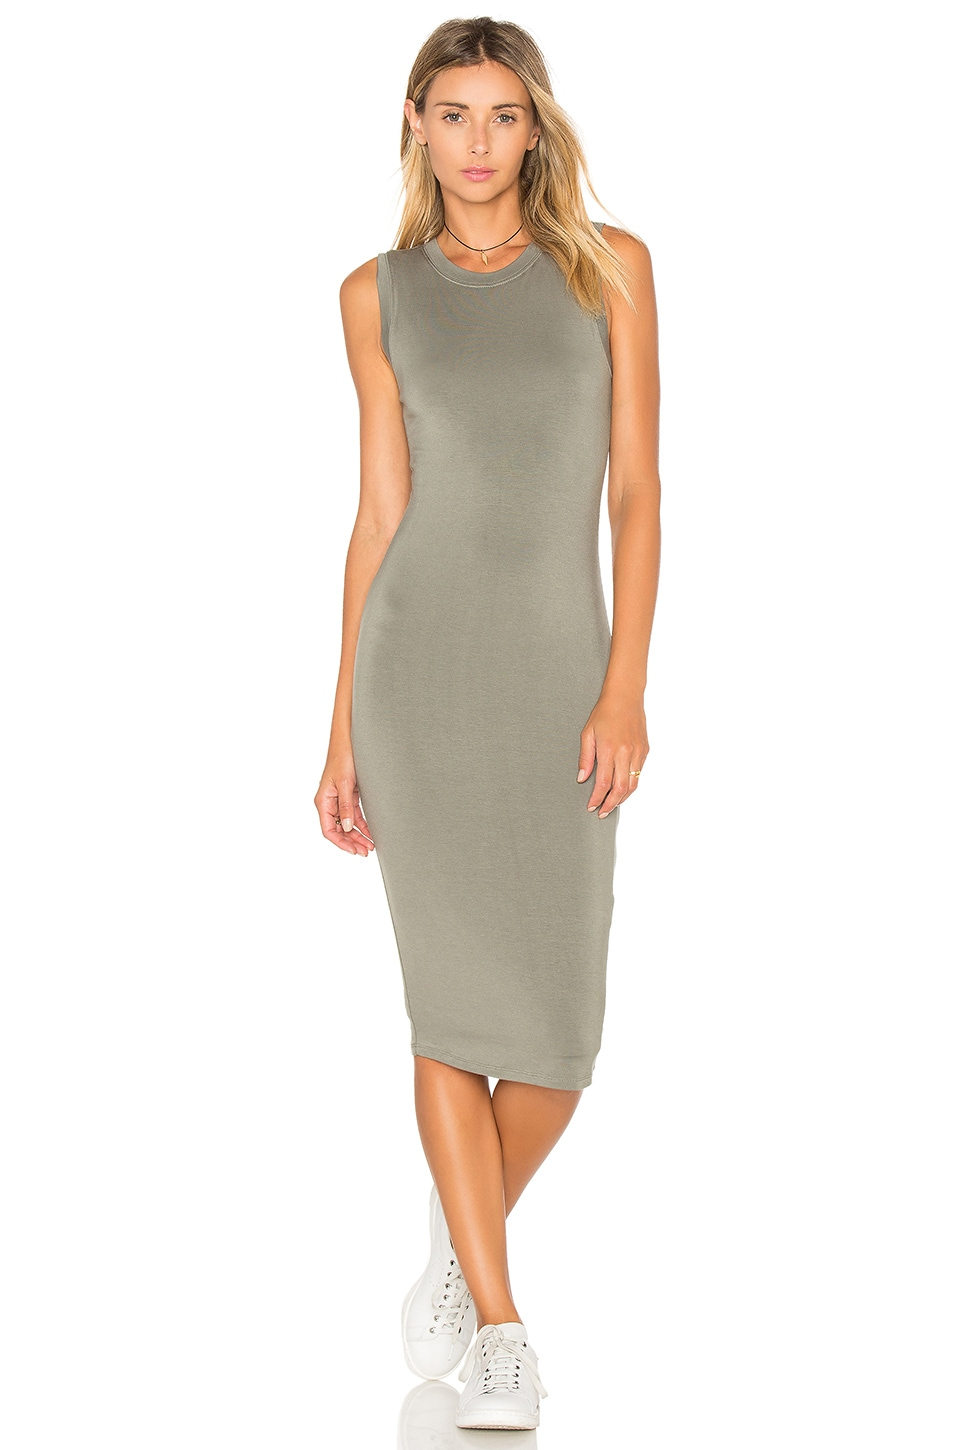 Tank Midi Dress by Blq Basiq